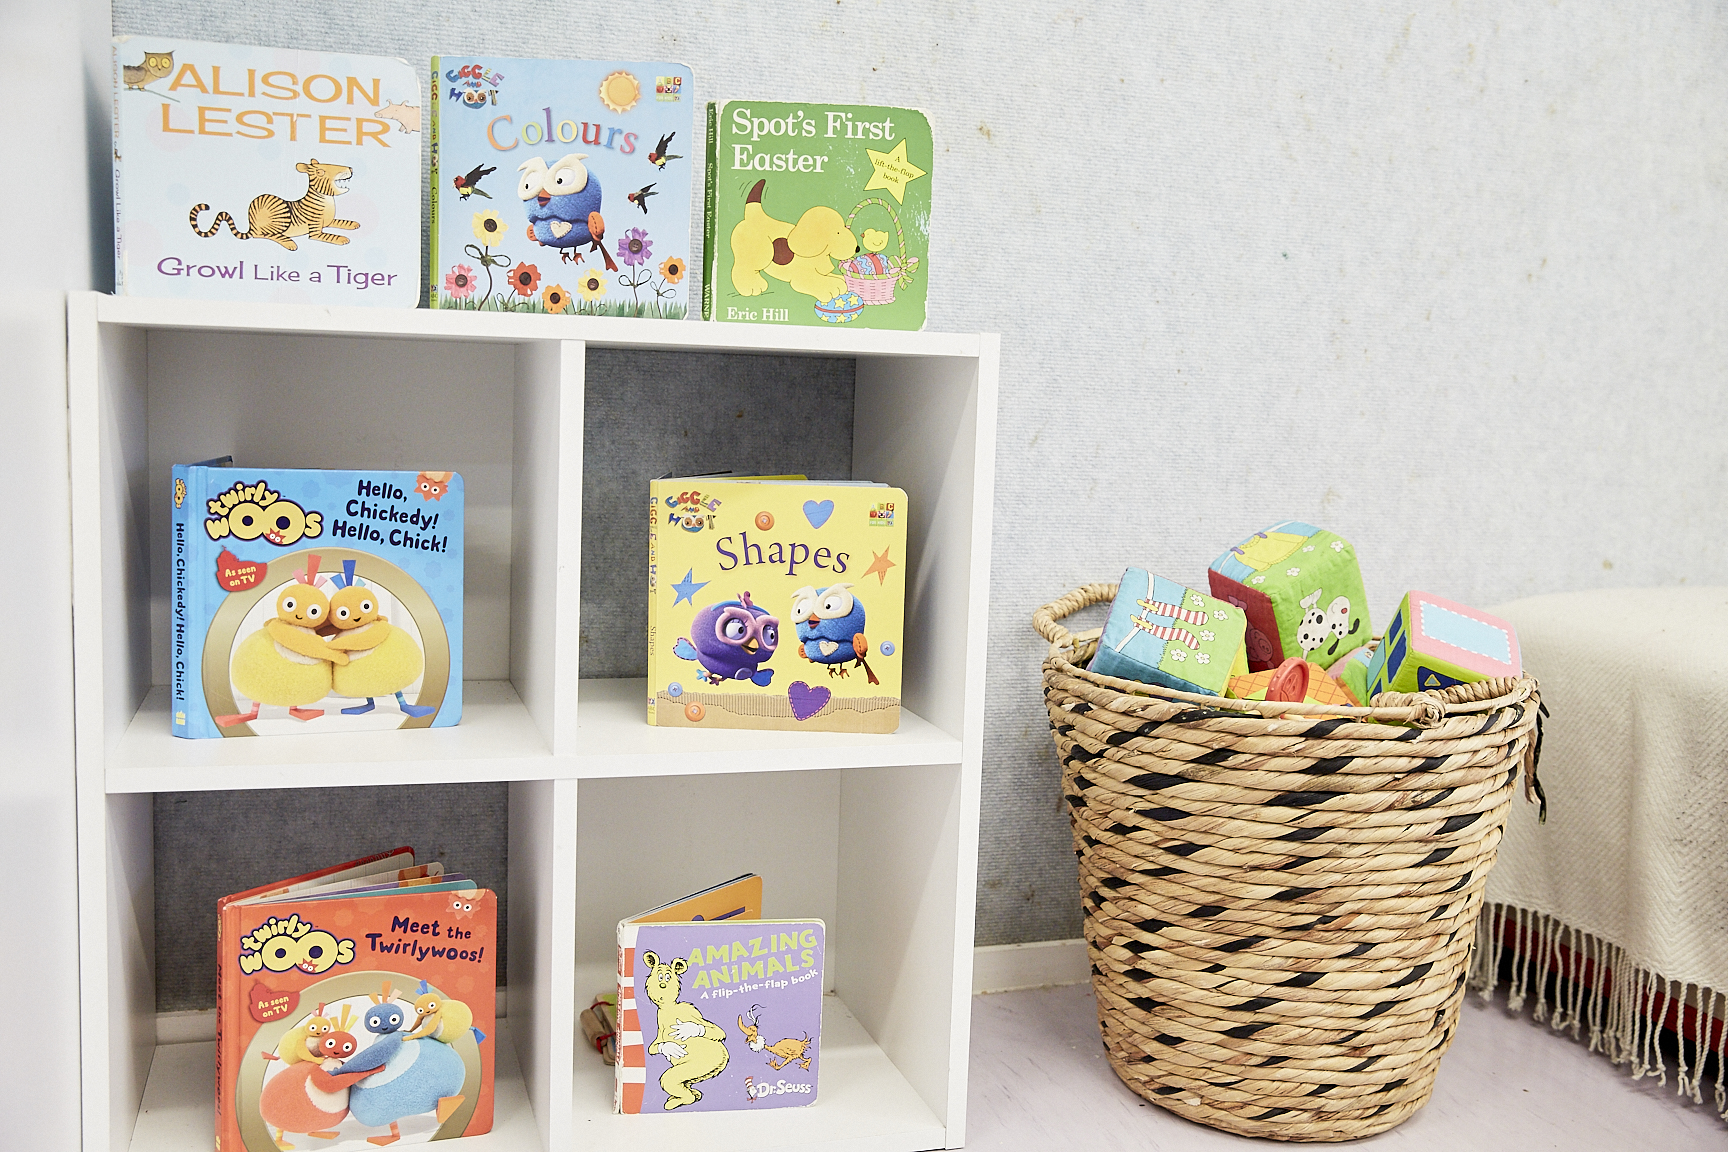 Preschool childrens books in child care classroom at The Learning Tree Yarralumla